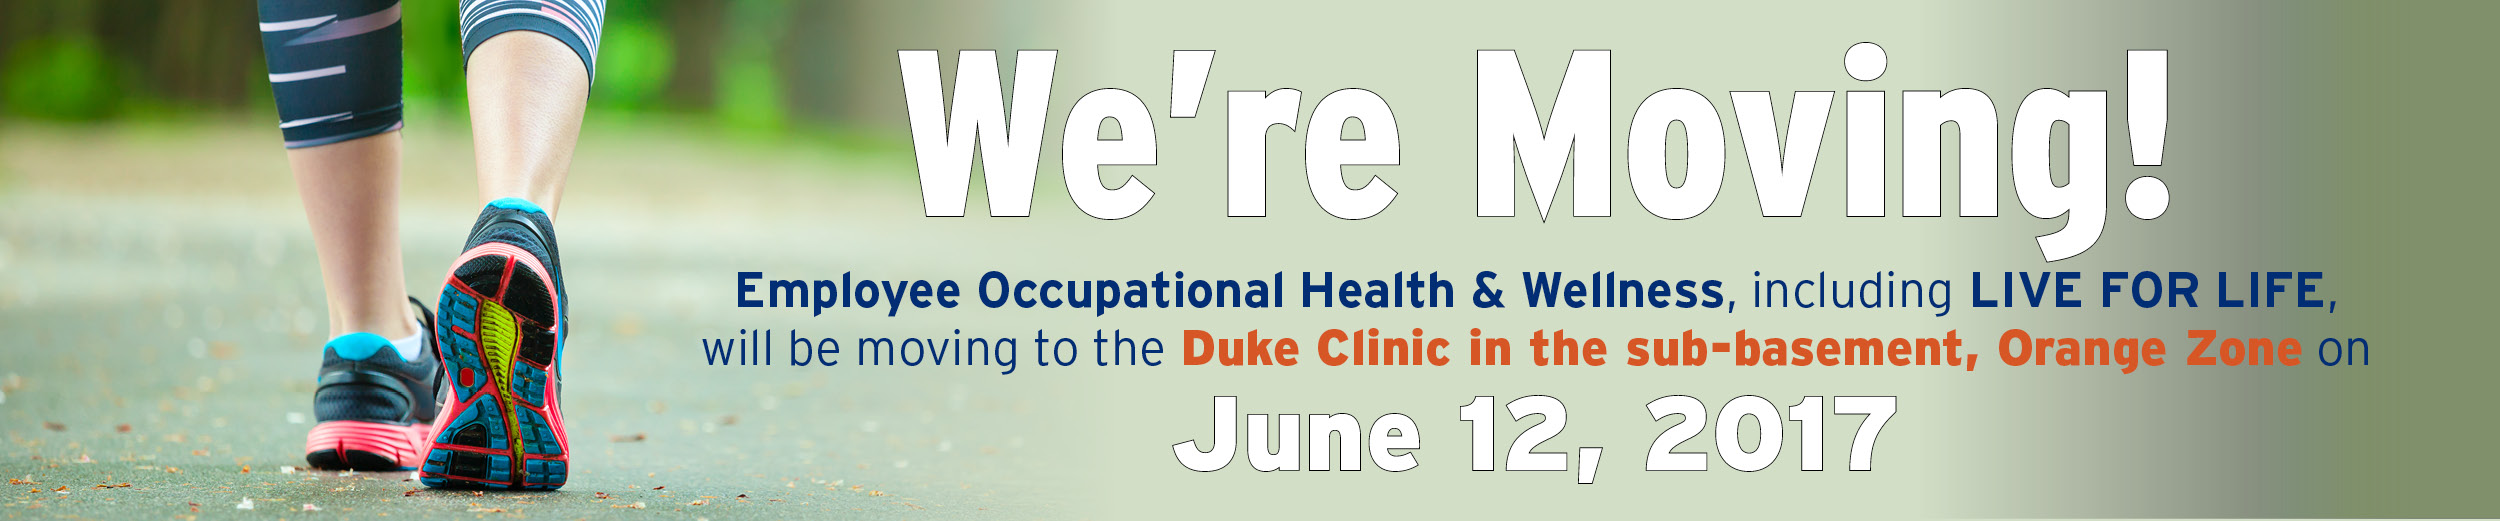 LIVE FOR LIFE and Employee Occupational Health & Wellness will be moving to the Duke Clinic in the sub-basement, Orange Zone on June 12, 2017